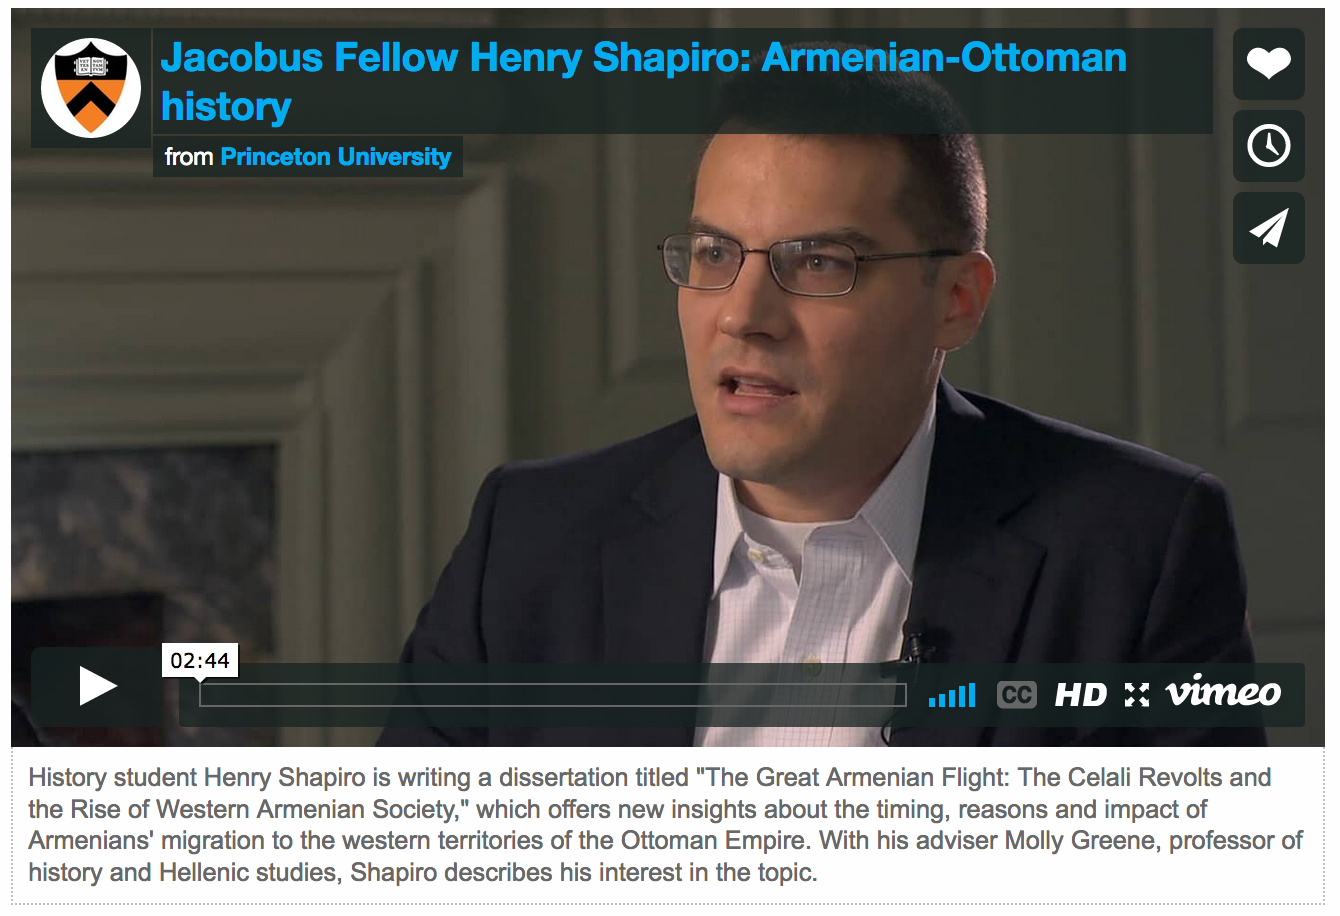 Jacobus Fellow Henry Shapiro: Armenian-Ottoman history. Link to video.